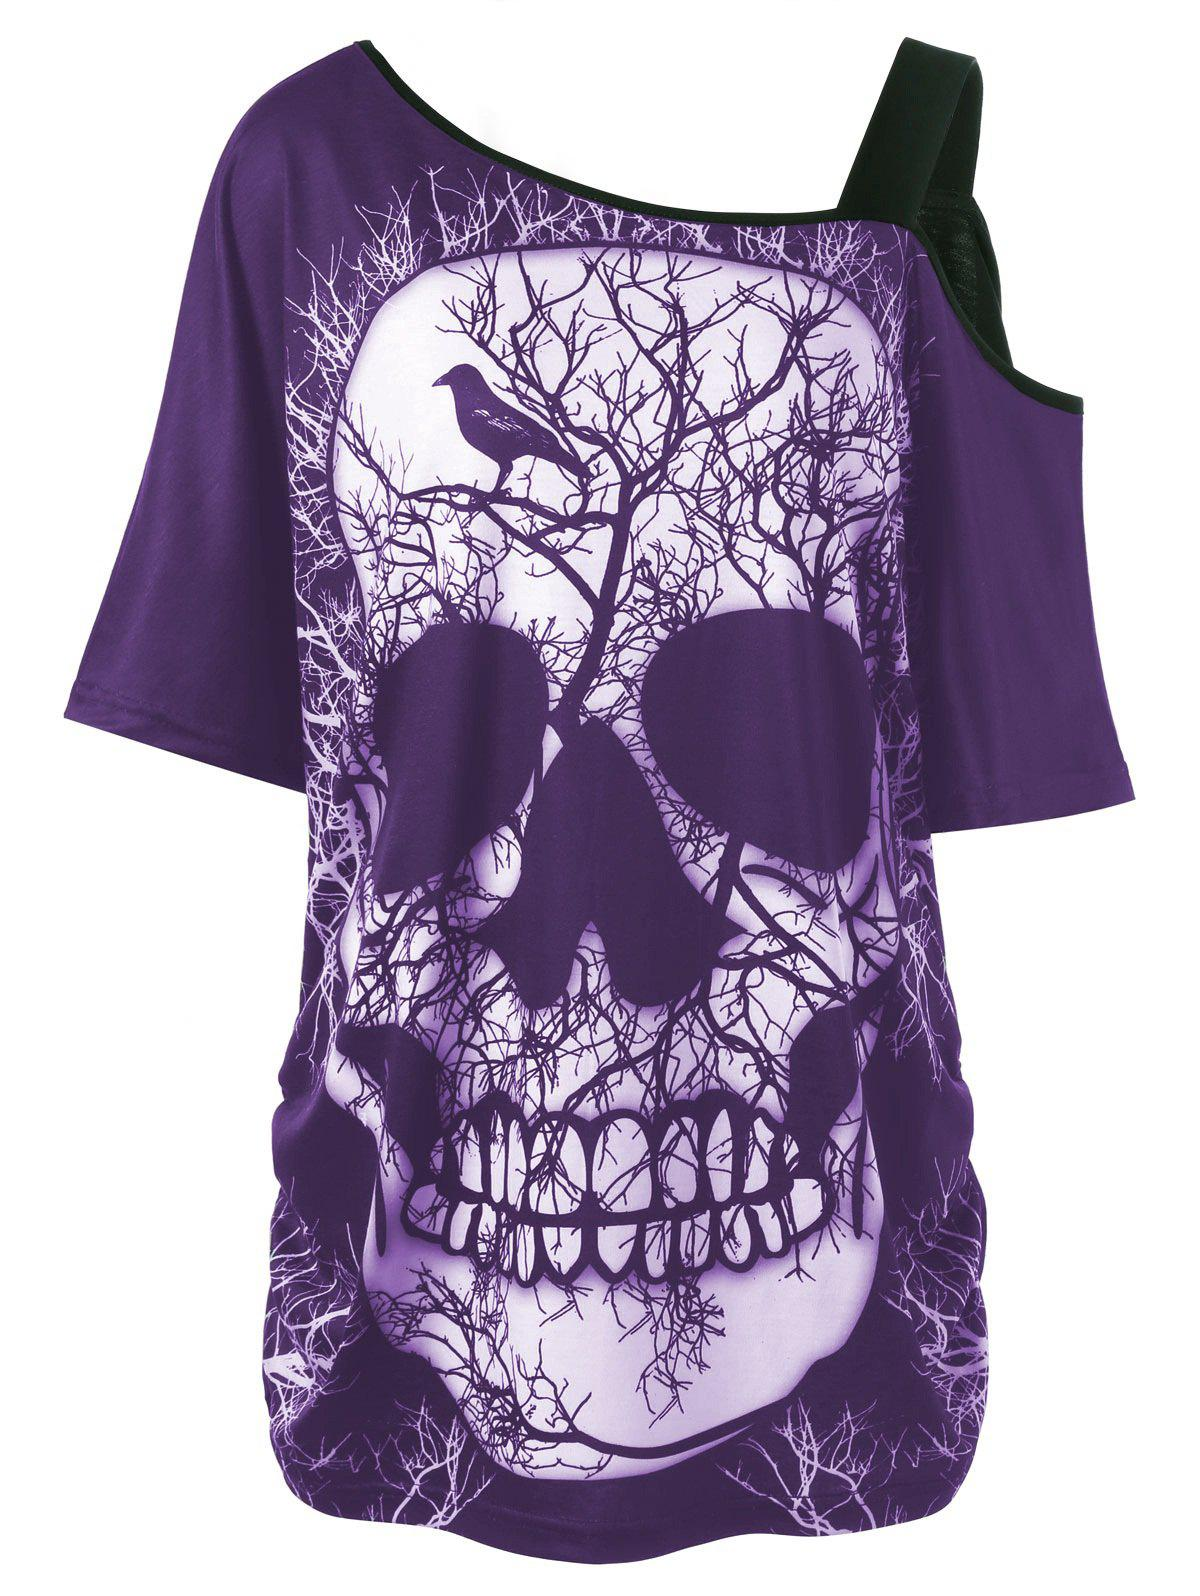 Plus Size Skull Skew Collar Long T-shirtWOMEN<br><br>Size: 5XL; Color: PURPLE; Material: Polyester,Spandex; Shirt Length: Long; Sleeve Length: Short; Collar: Skew Collar; Style: Casual; Season: Summer; Pattern Type: Skulls; Weight: 0.3000kg; Package Contents: 1 x T-shirt;